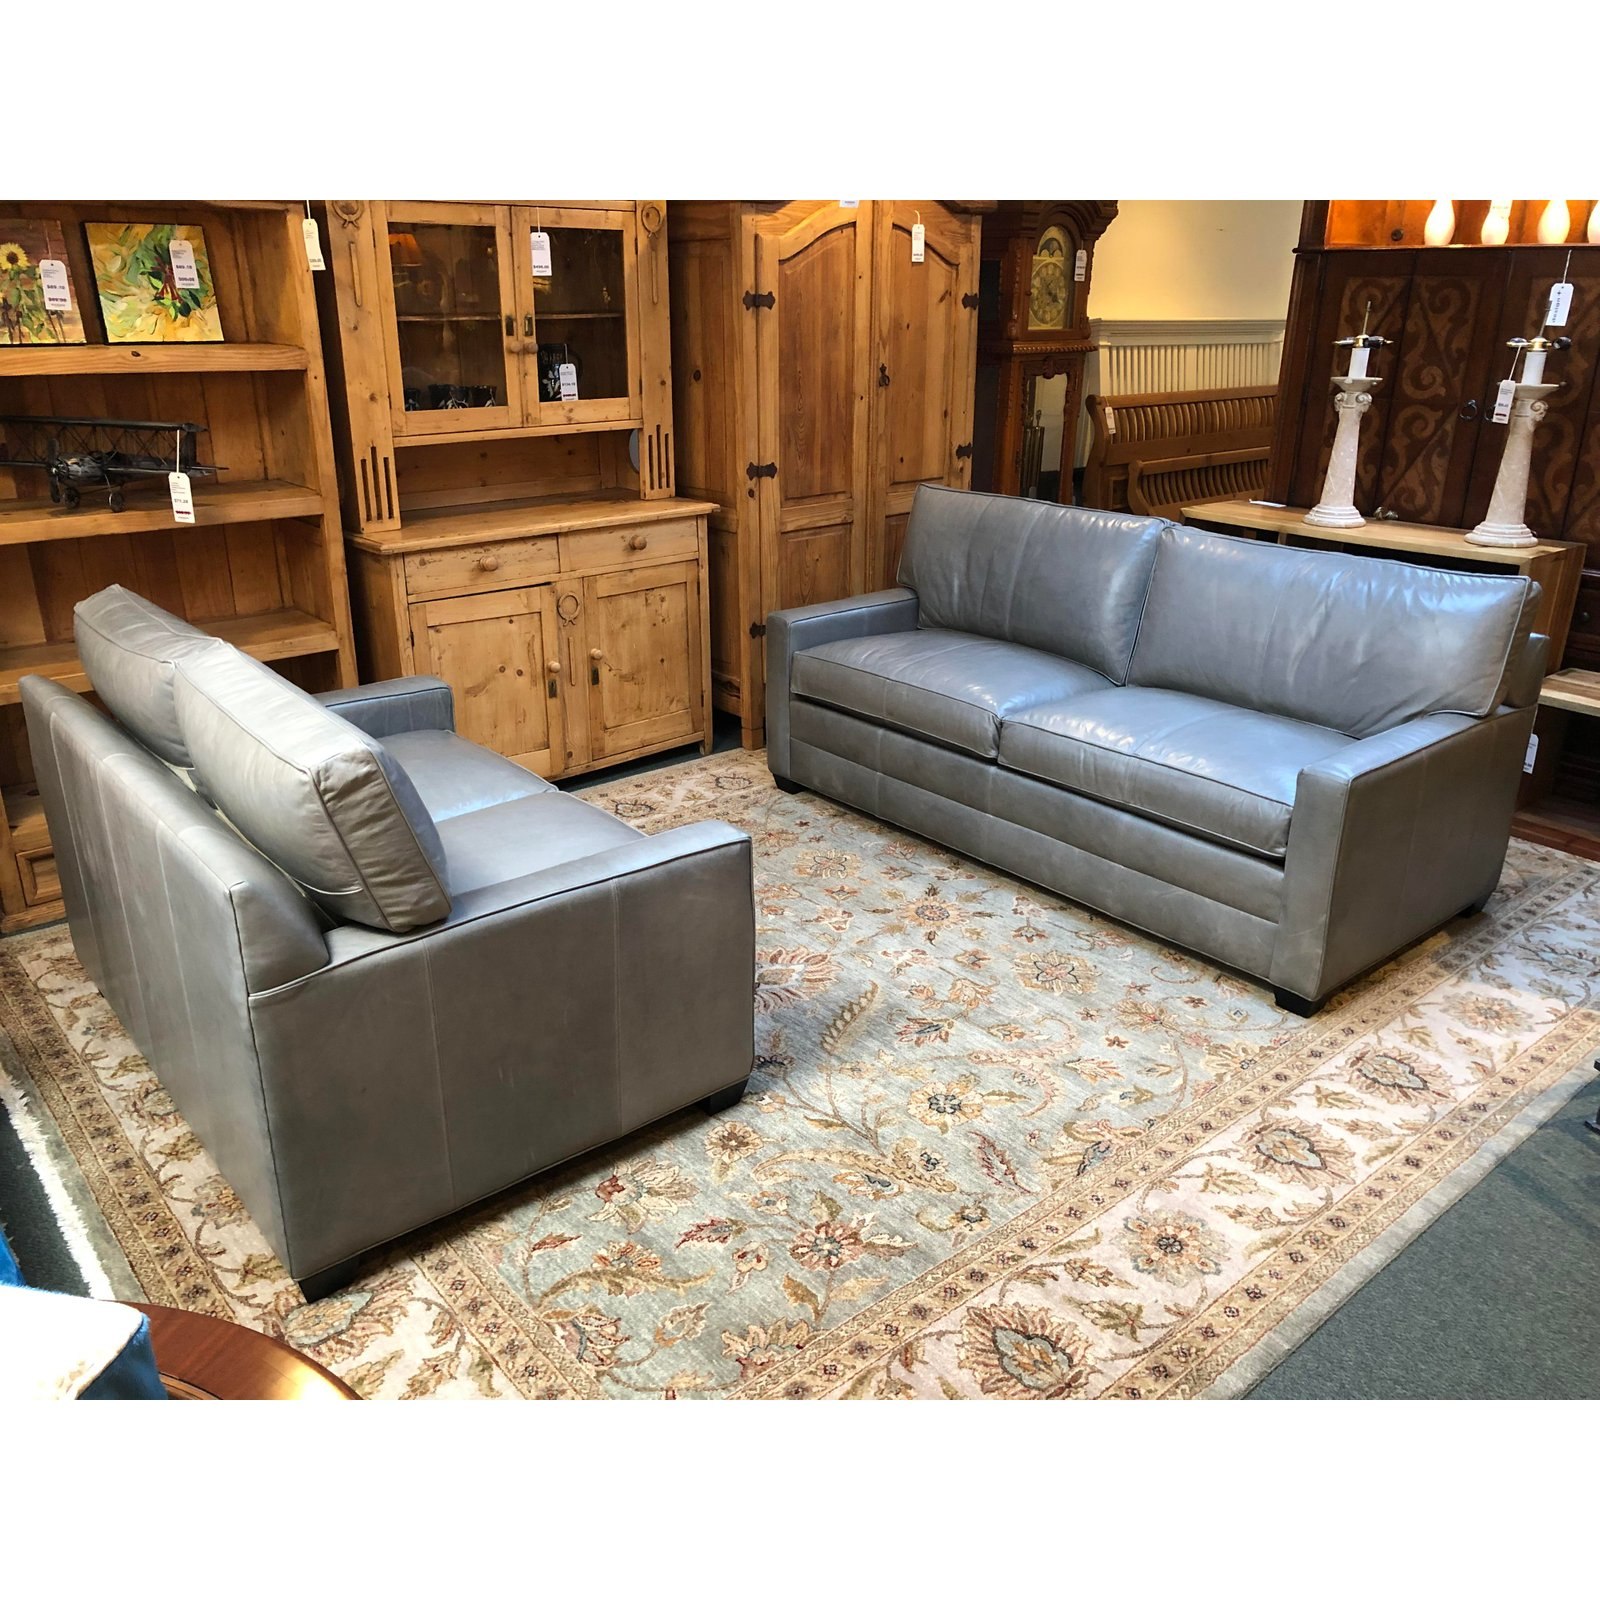 Bennett Leather Sofa From Ethan Allen. Original Price: $3,800 ...